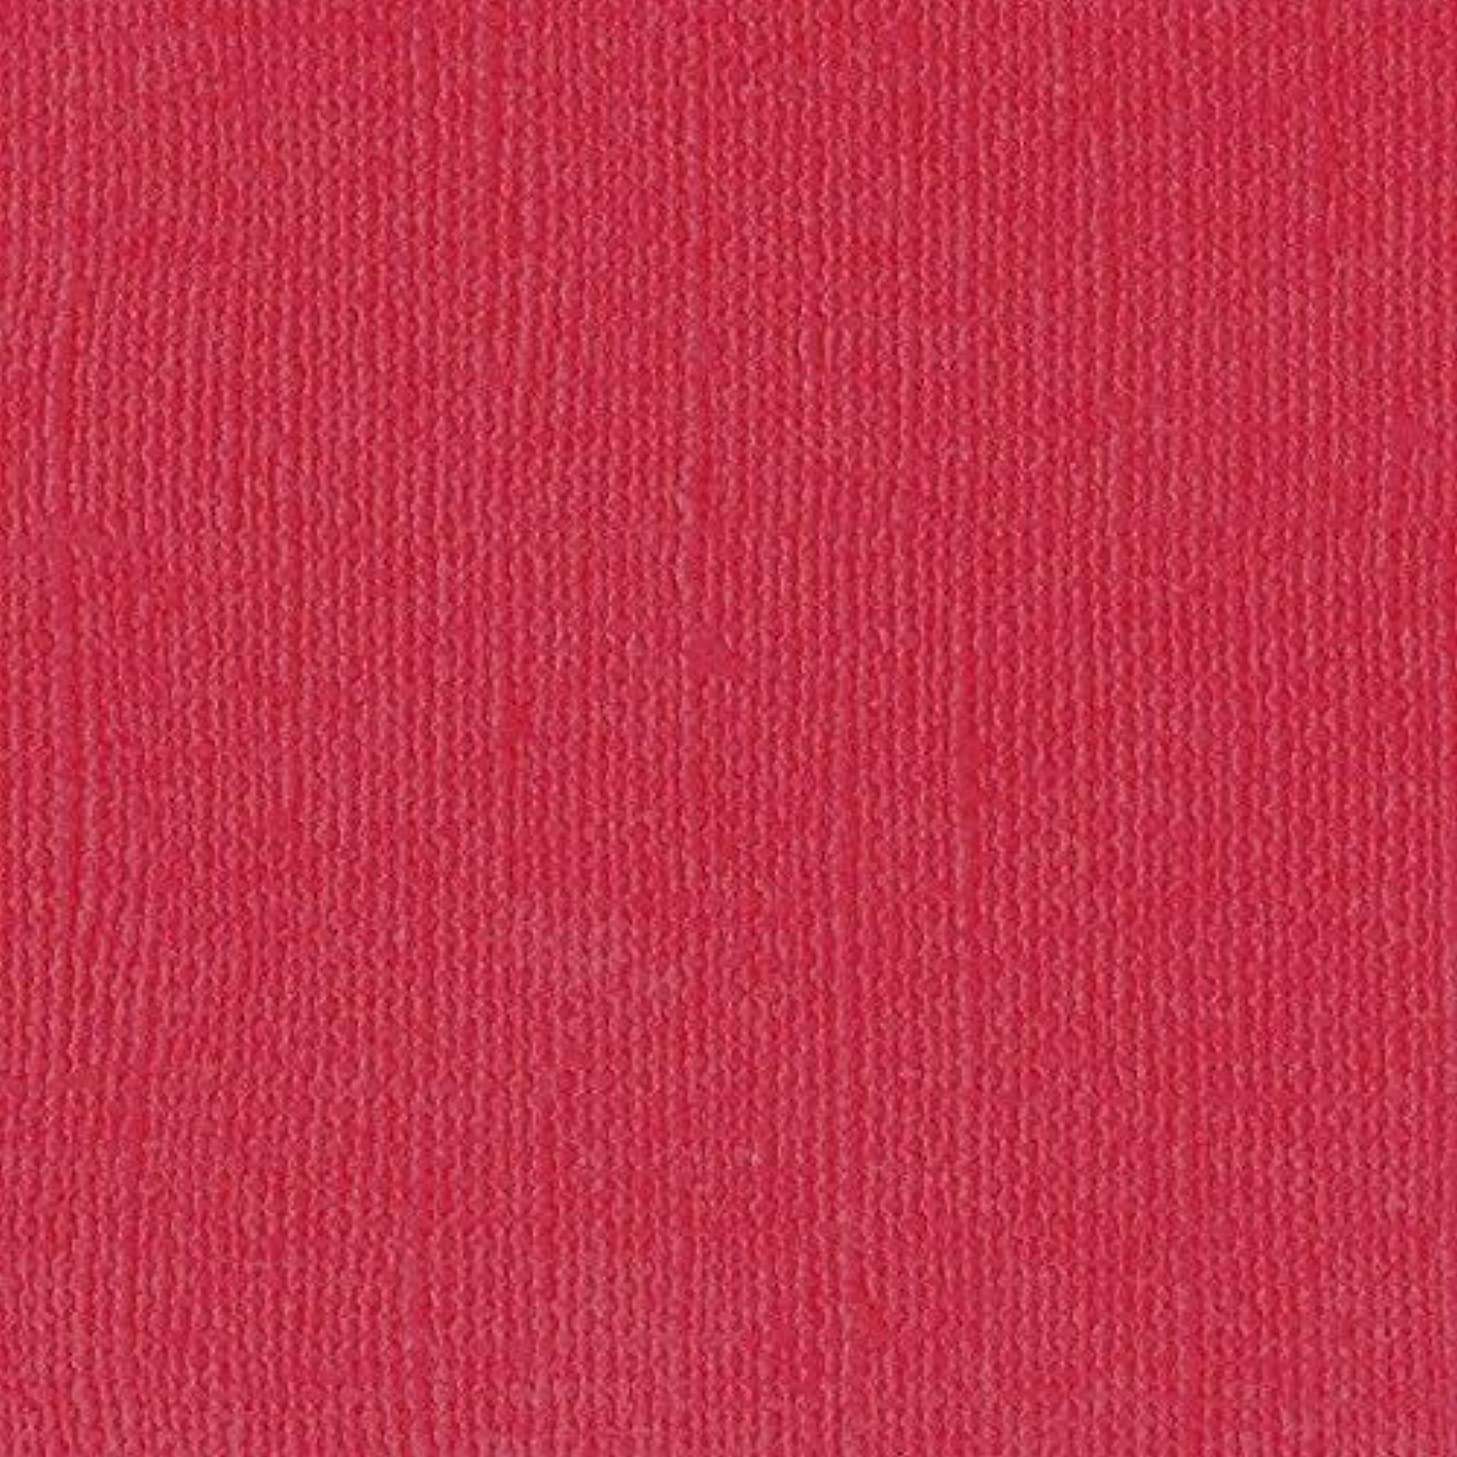 Vaessen Creative A4 Texture Florence Cardstock Canvas, Paper, Ruby, One Size